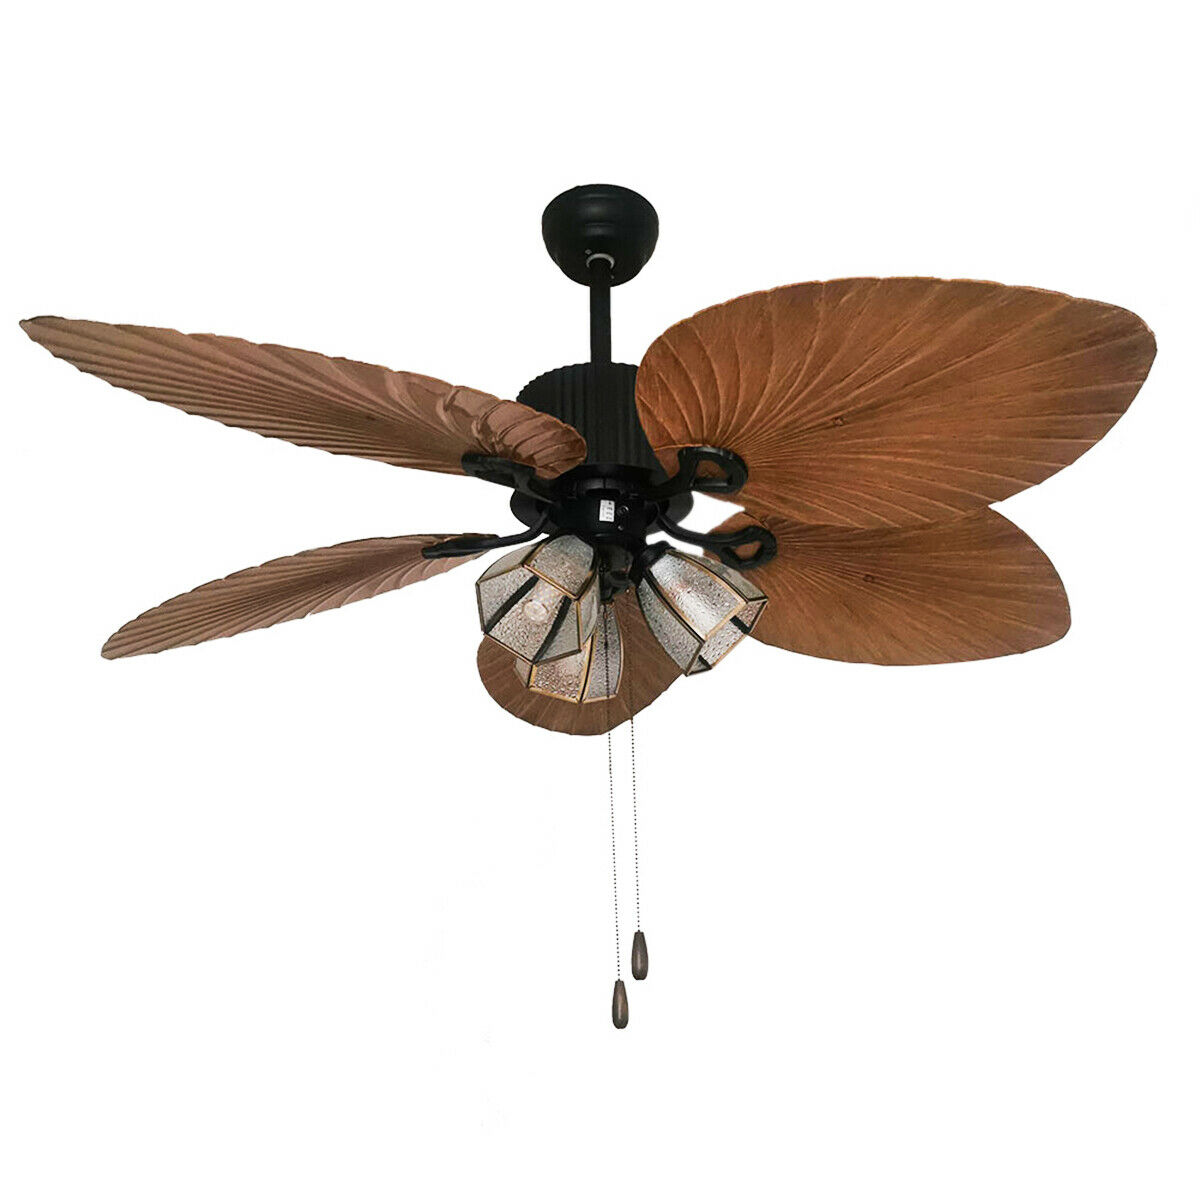 Harbor Breeze 52 Ceiling Fan With Light Fixture And Palm Leaf Blades For Sale Online Ebay